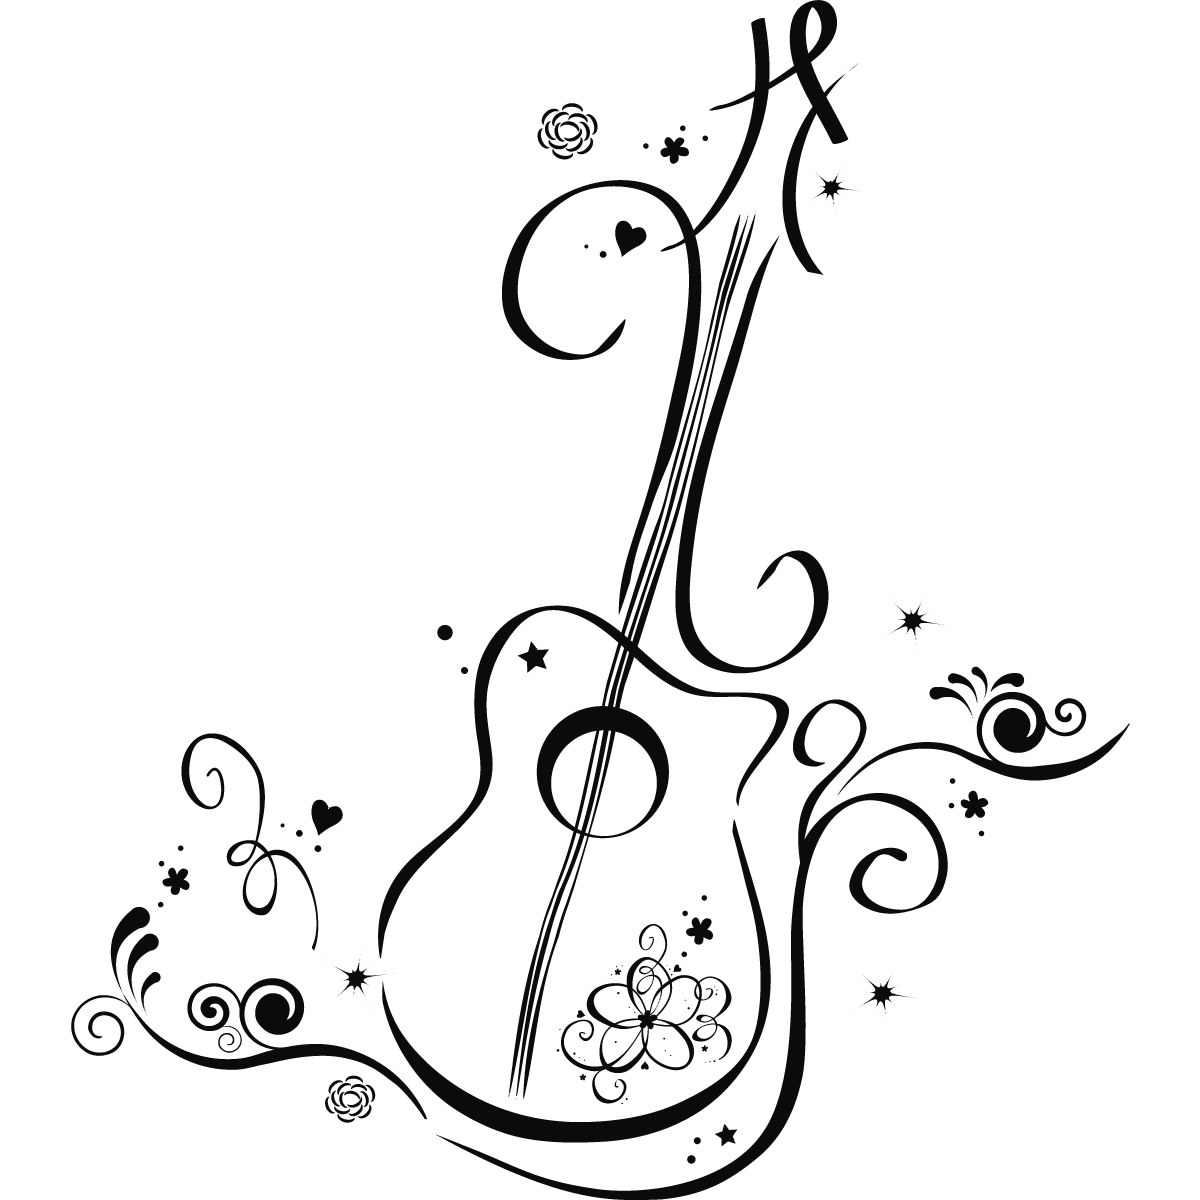 Line Drawing Wallpaper Uk : Floral guitar wall art decals stickers transfers ebay